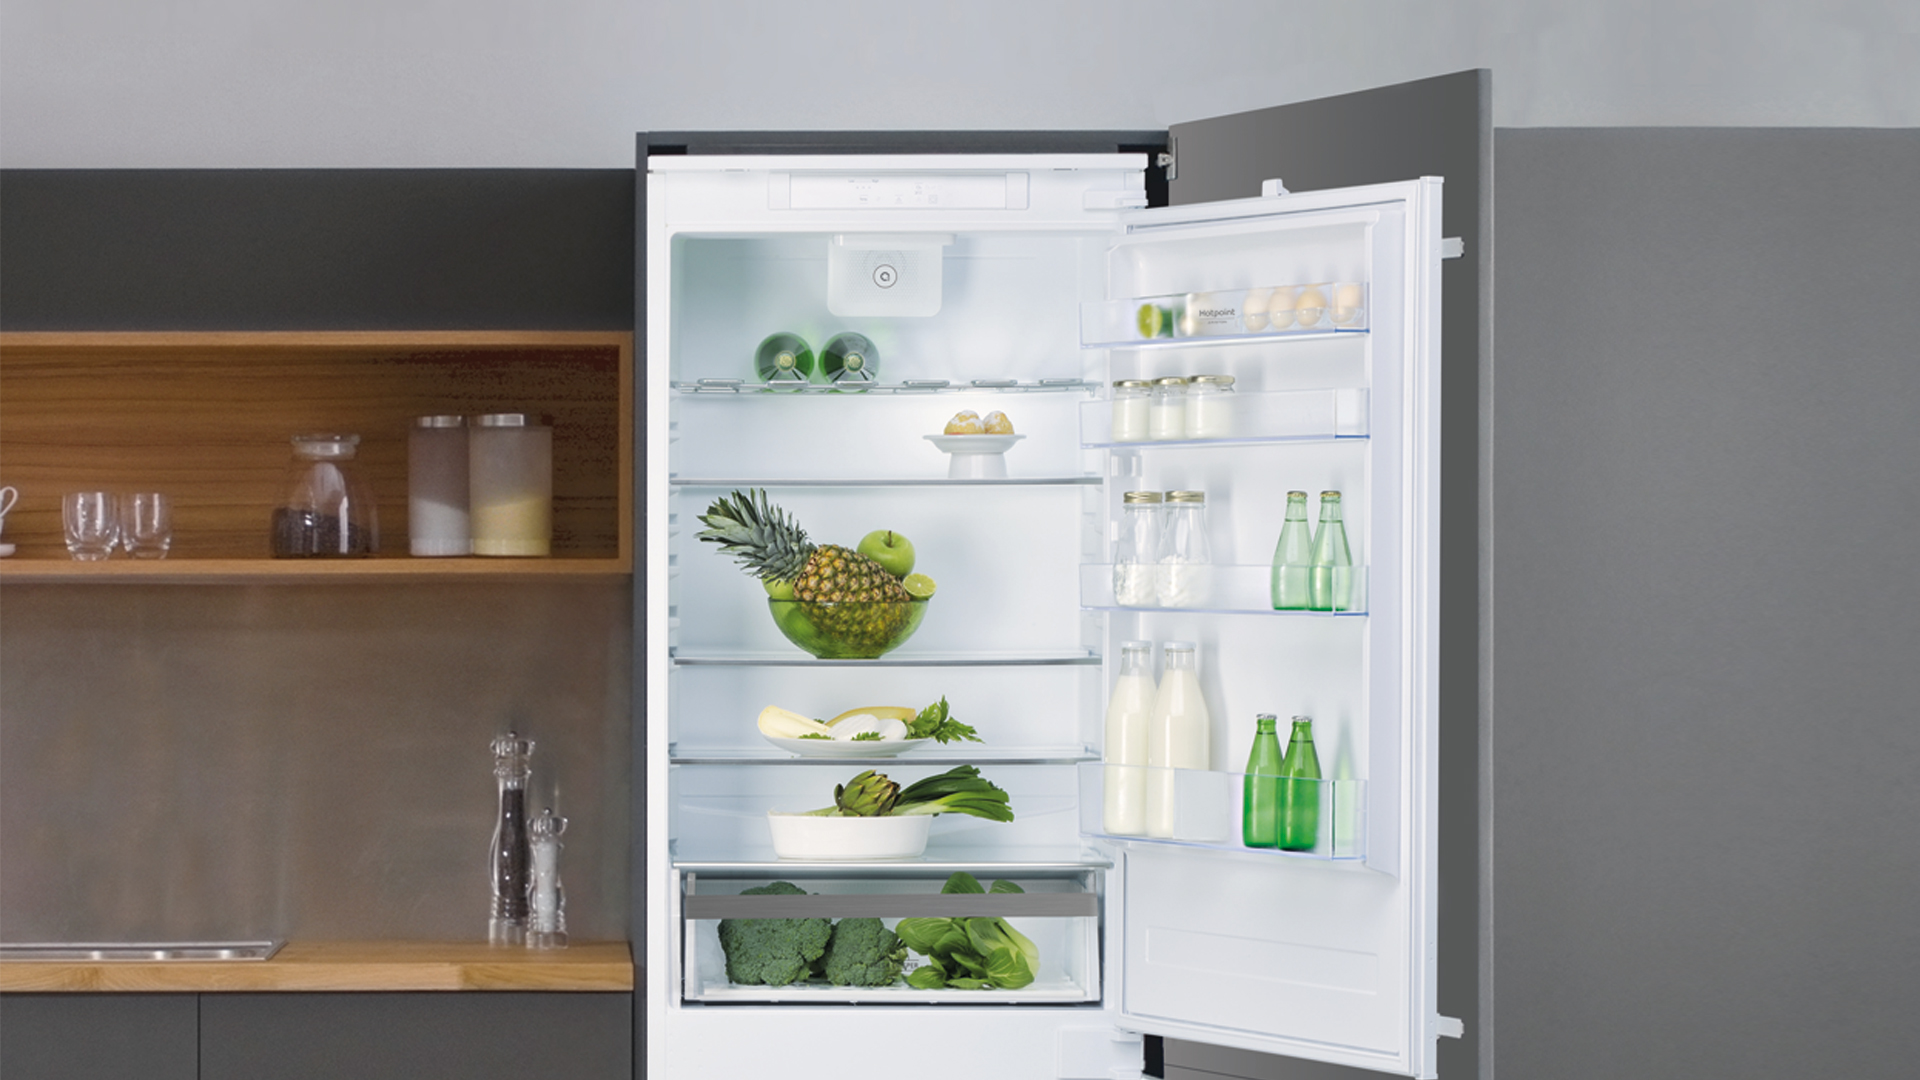 Extra space or freshness? You can have both with the Space 400 Hotpoint refrigerator - Cucine LUBE